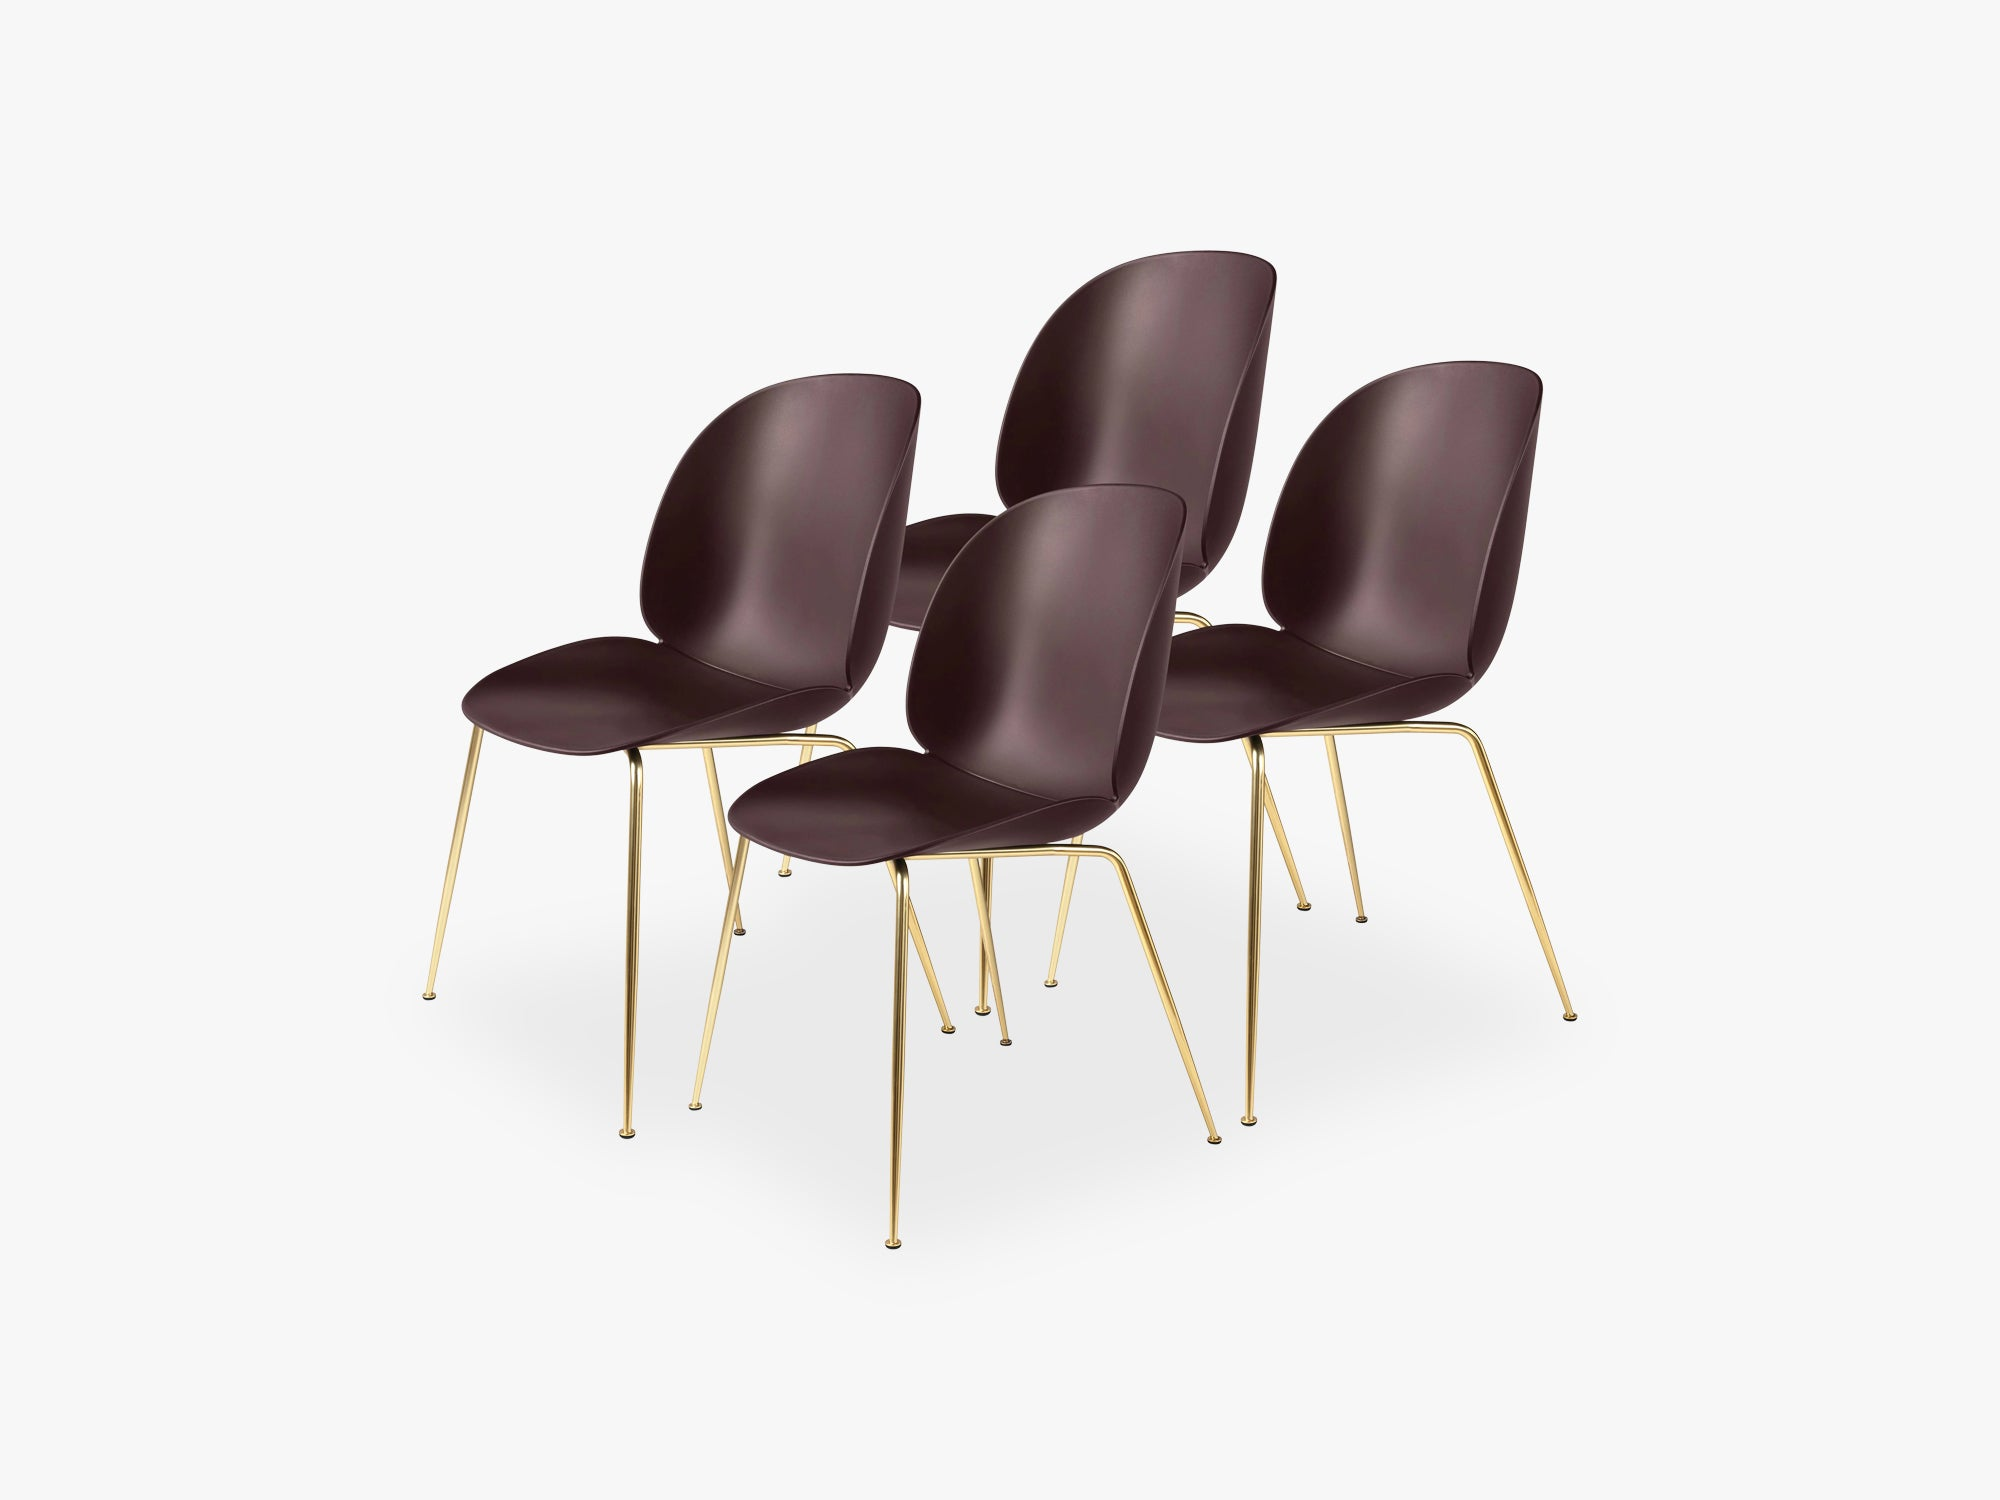 Beetle Dining Chair 4 pcs - Conic Brass Semi Matt Base, Dark Pink fra GUBI